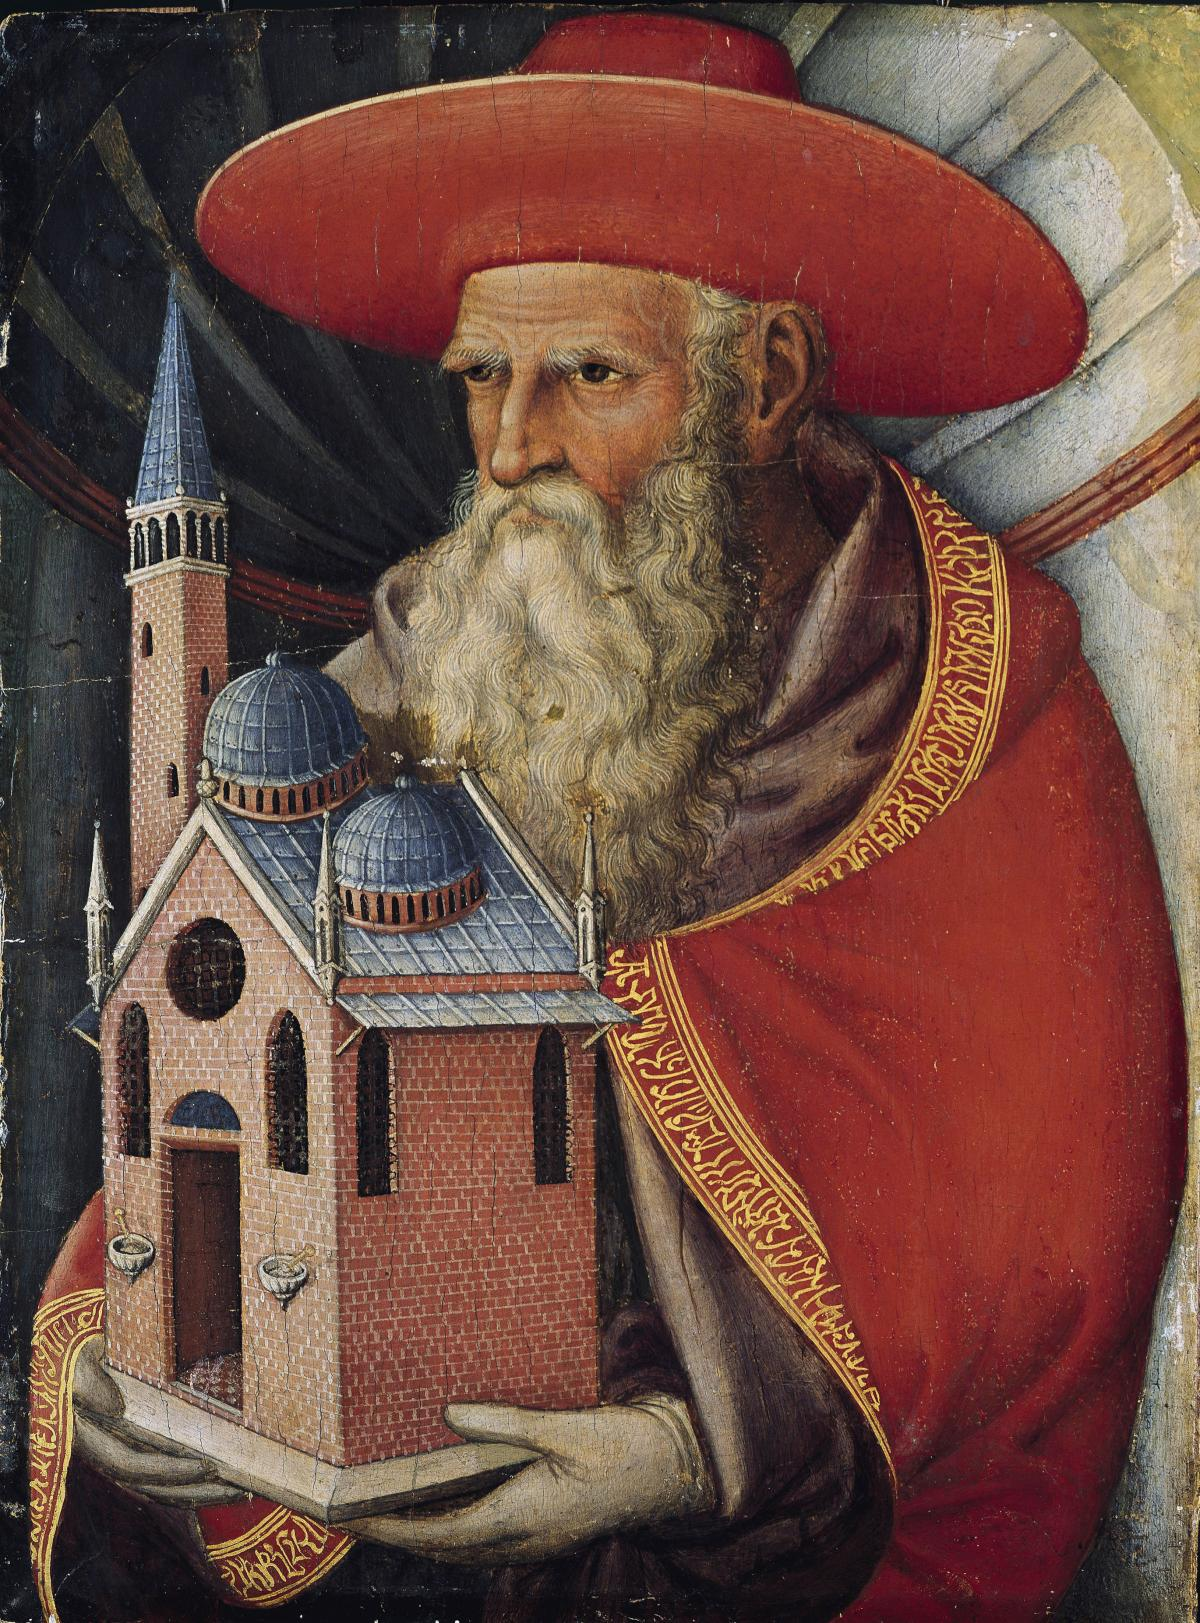 Old bearded man in a red hat and red embroidered robe, holds a miniature model of a red brick and blue church